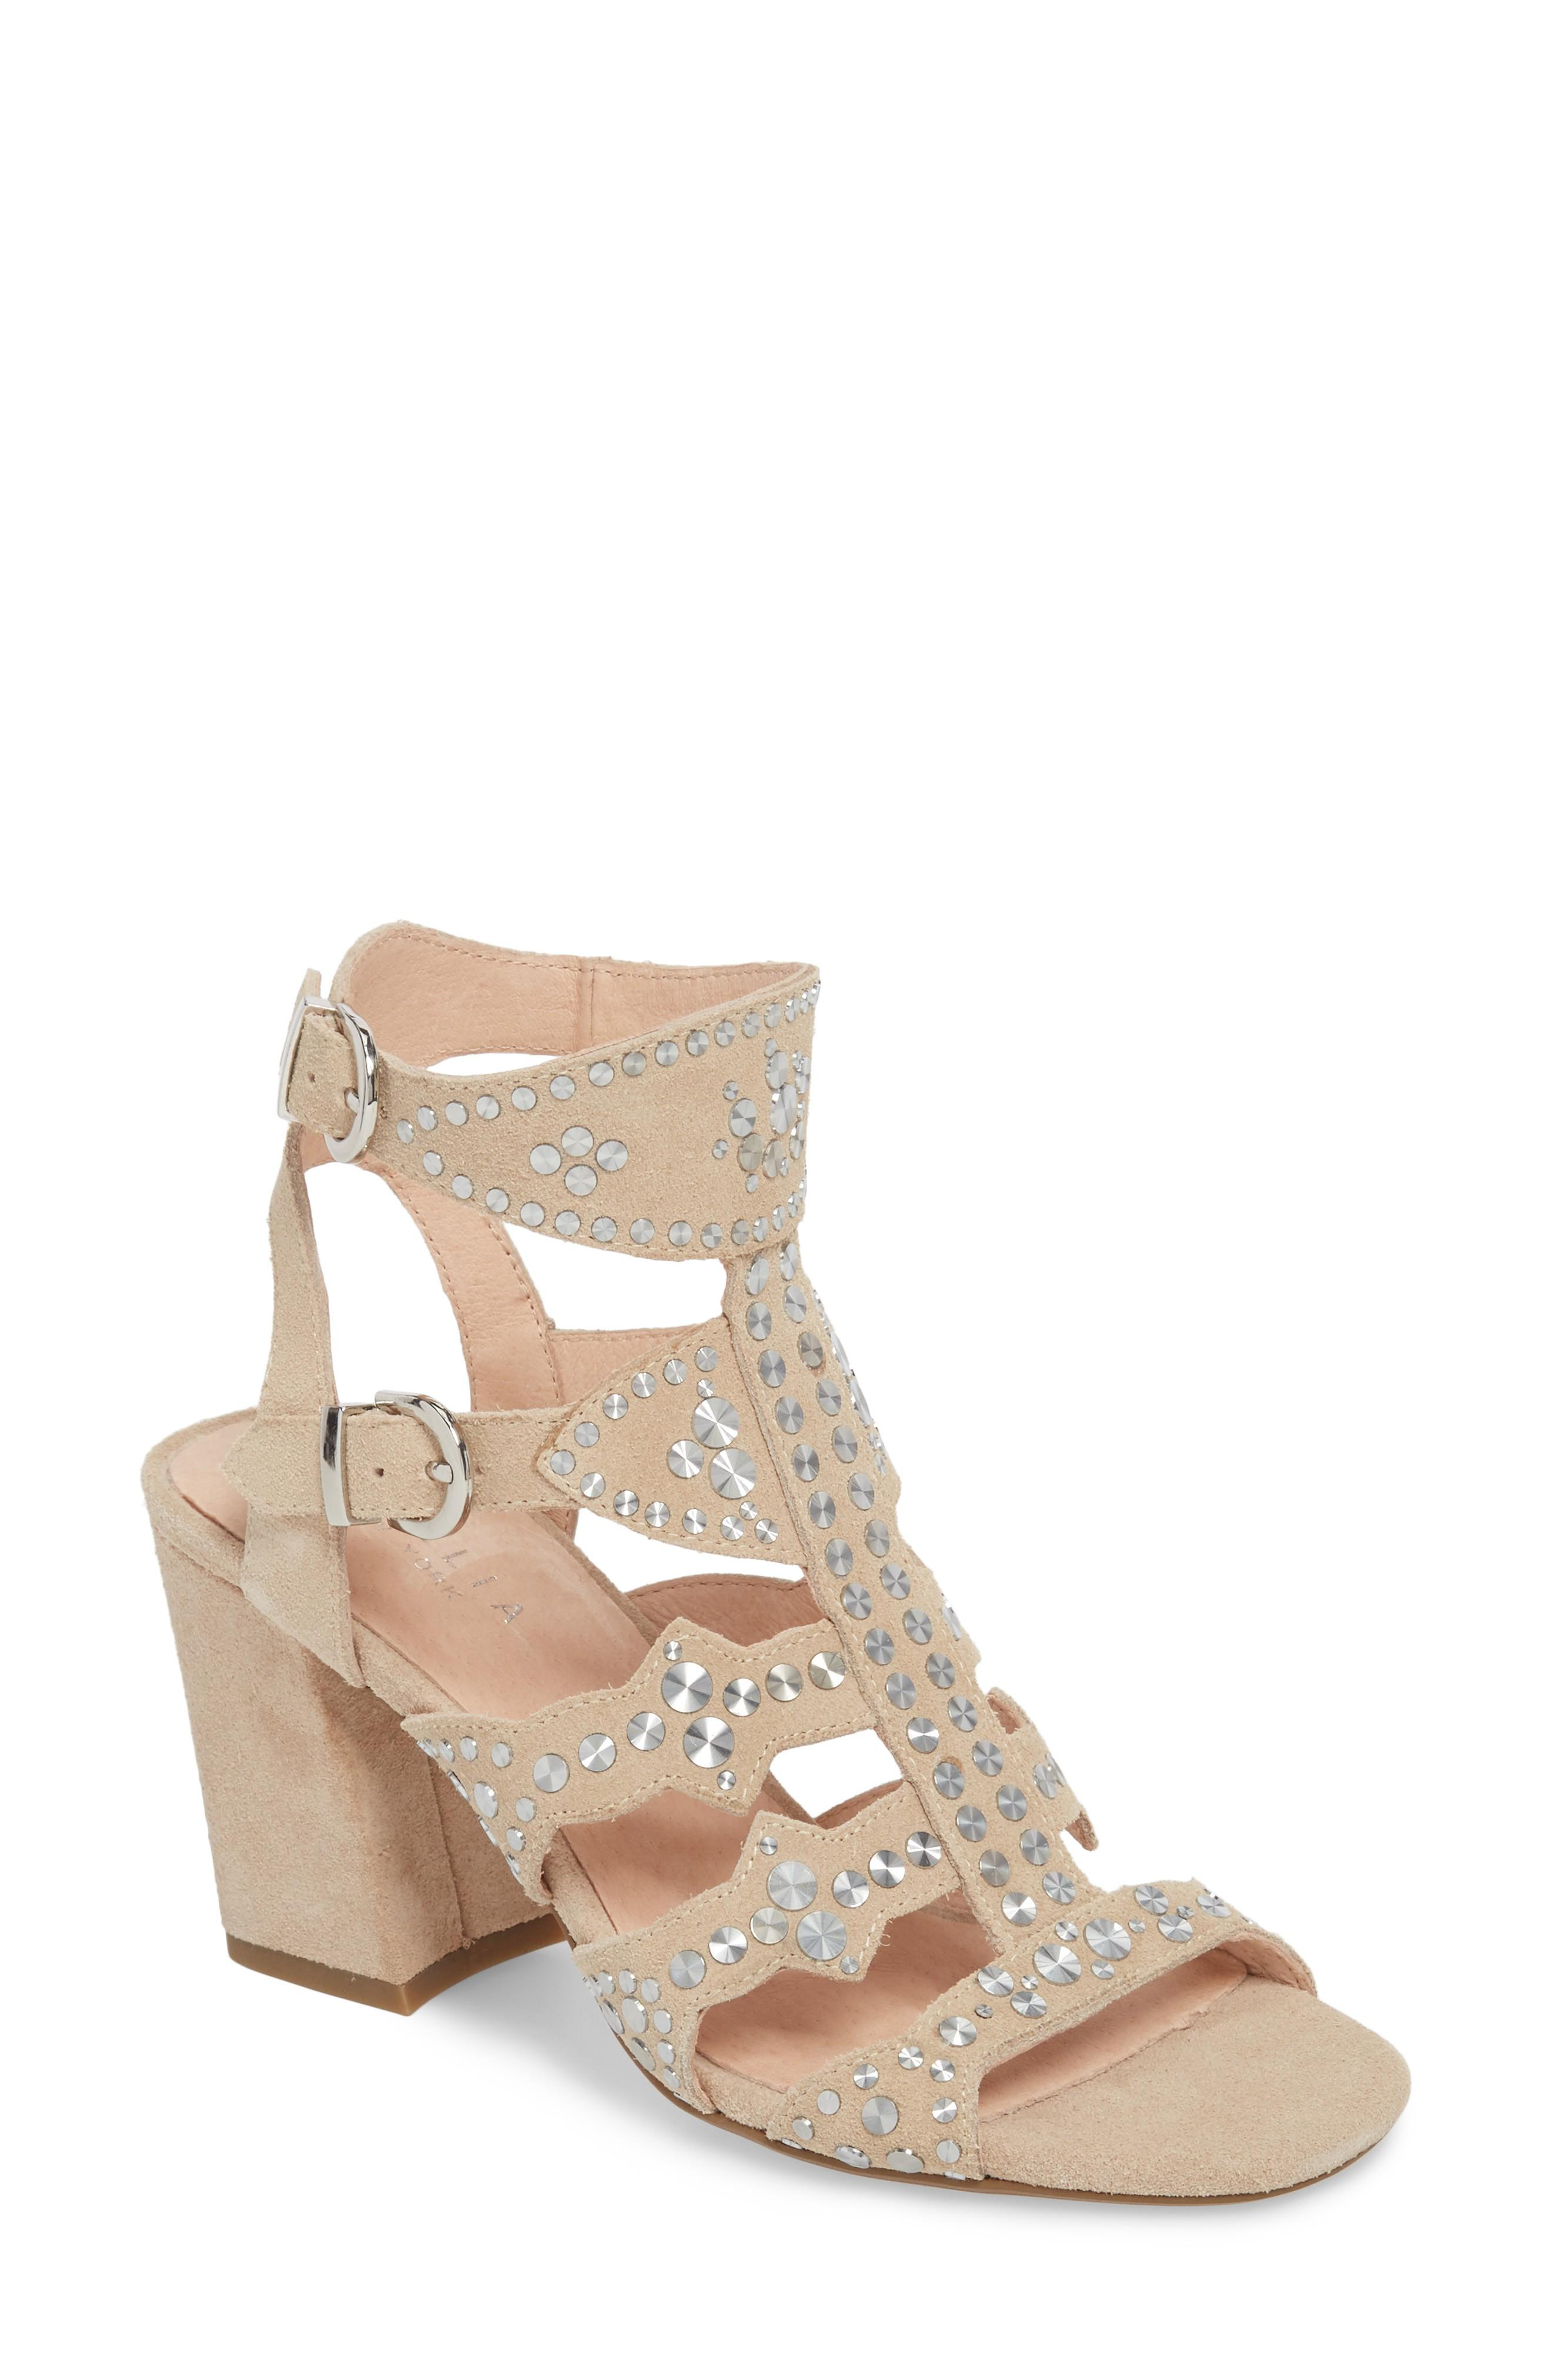 Cecelia New York Cosmo Studded Sandal In Bone Suede